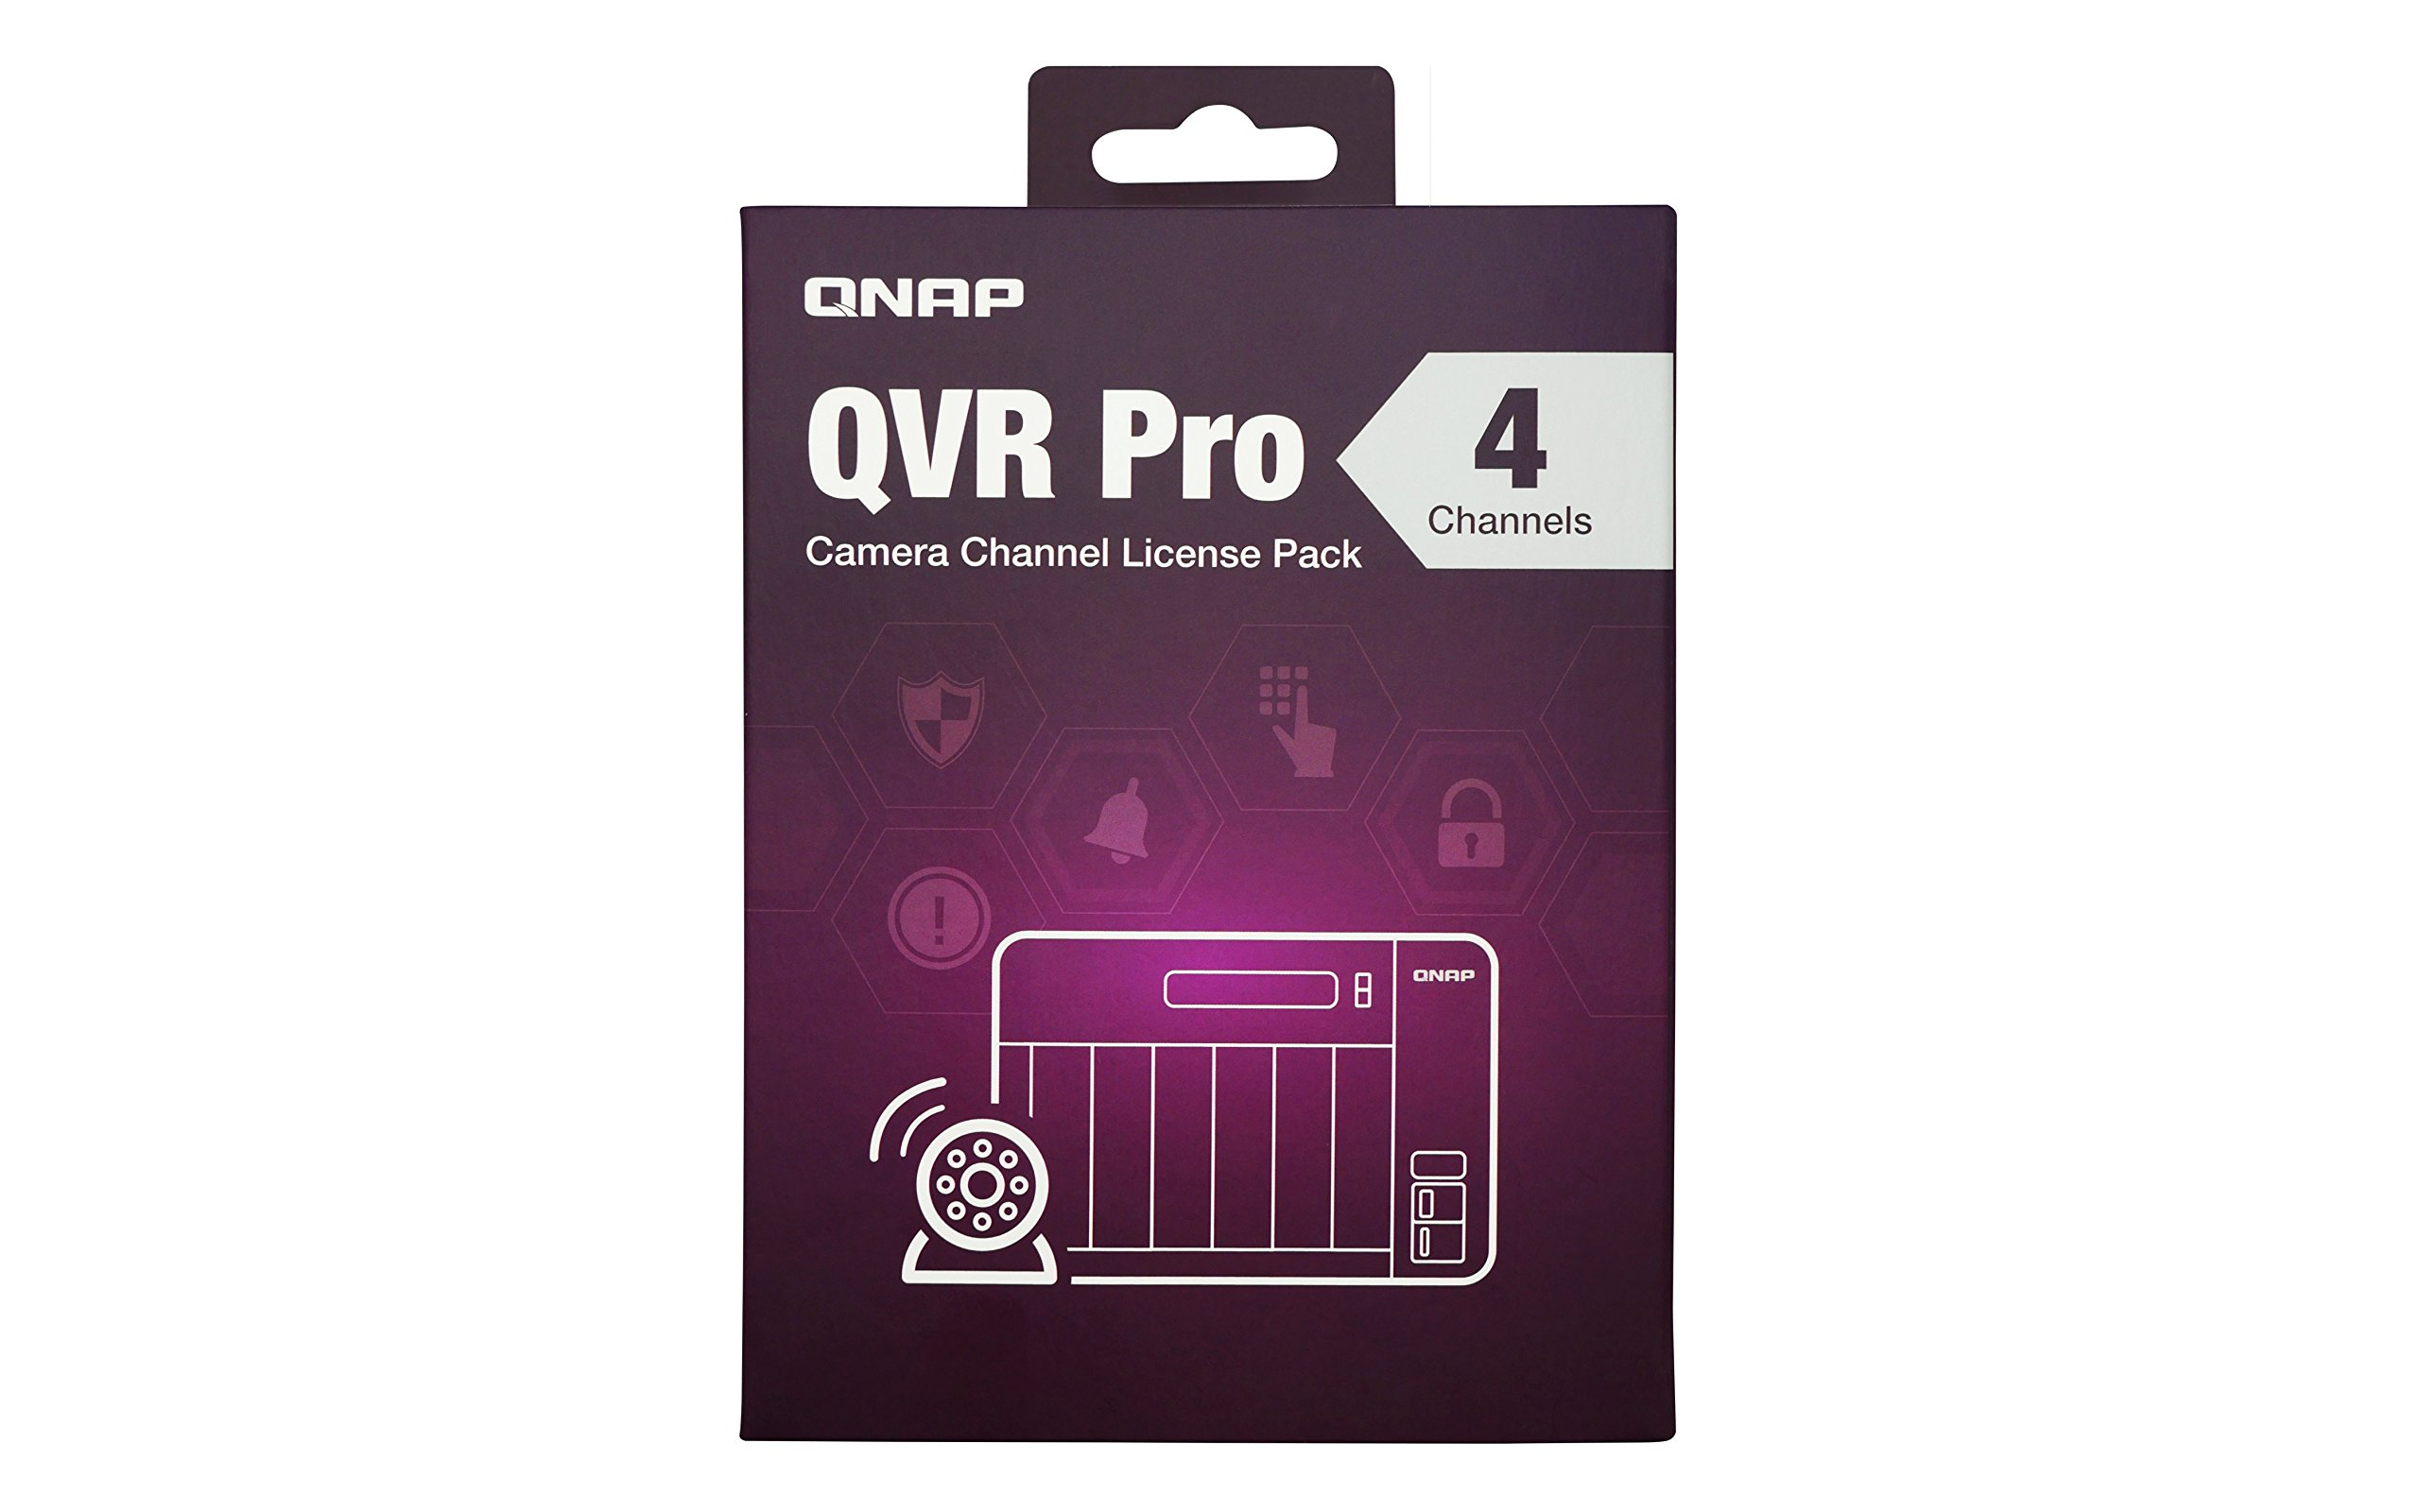 QNAP LIC-SW-QVRPRO-4CH 4 Channel license (QVR Pro Gold is required) 1 Additional 1, 4, or 8 channel(s) for QVR Pro The 1, 4, and 8 channel license can only be activated if the Turbo NAS already has a QVR Pro Gold license. Supported Models: For the best user experience, we recommend using 64-bit x86 NAS models with at least 4GB RAM